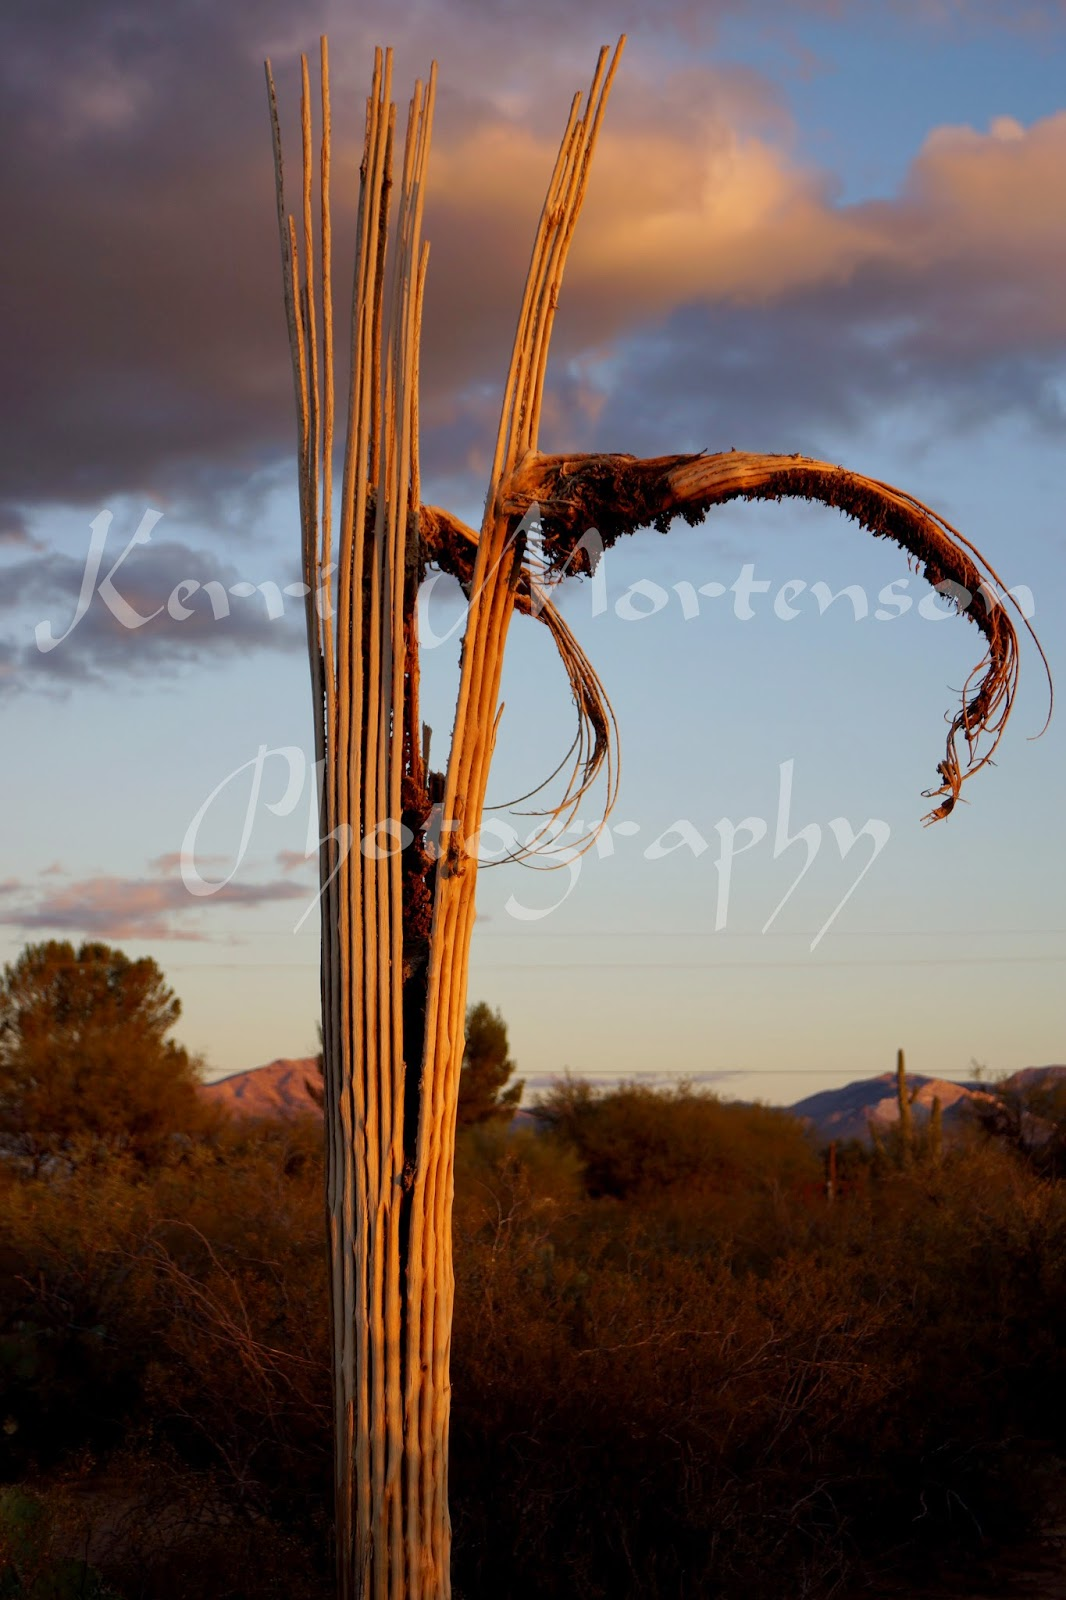 http://kerri-mortenson.artistwebsites.com/featured/cactus-ribs-kerri-mortenson.html